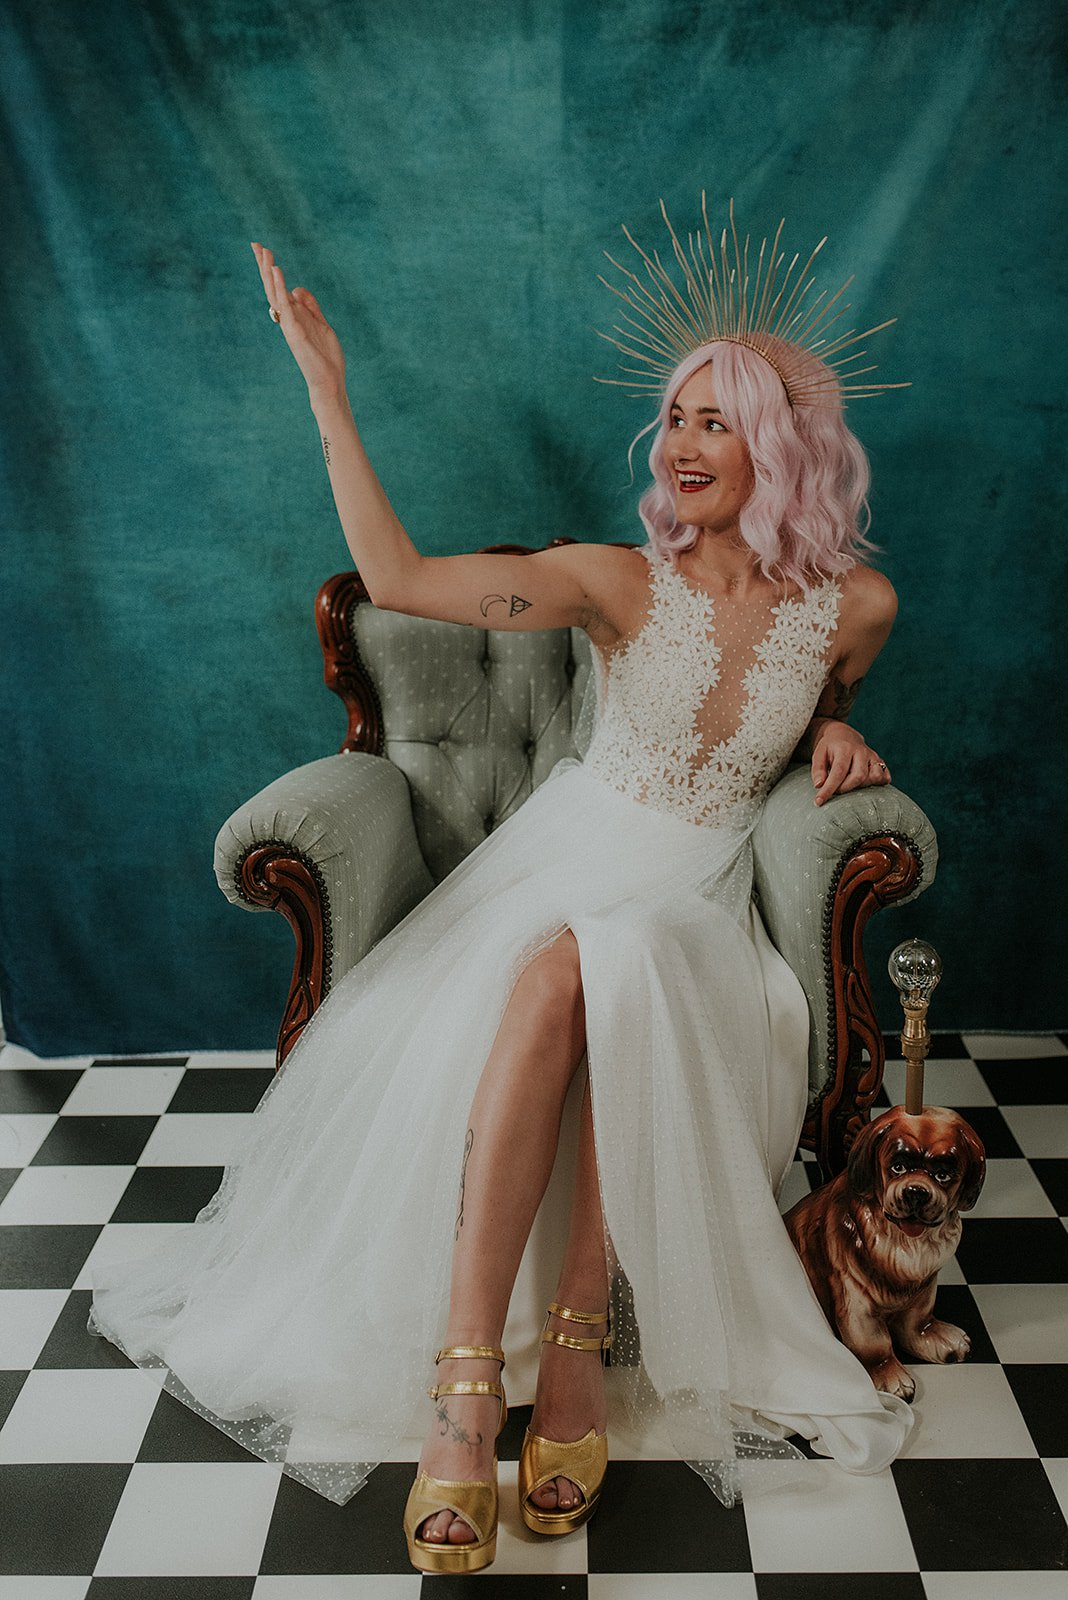 Lucy Cant Dance Cosmic Rodeo Alternative wedding dresses separates Megan Elle Photography 00013.jpg